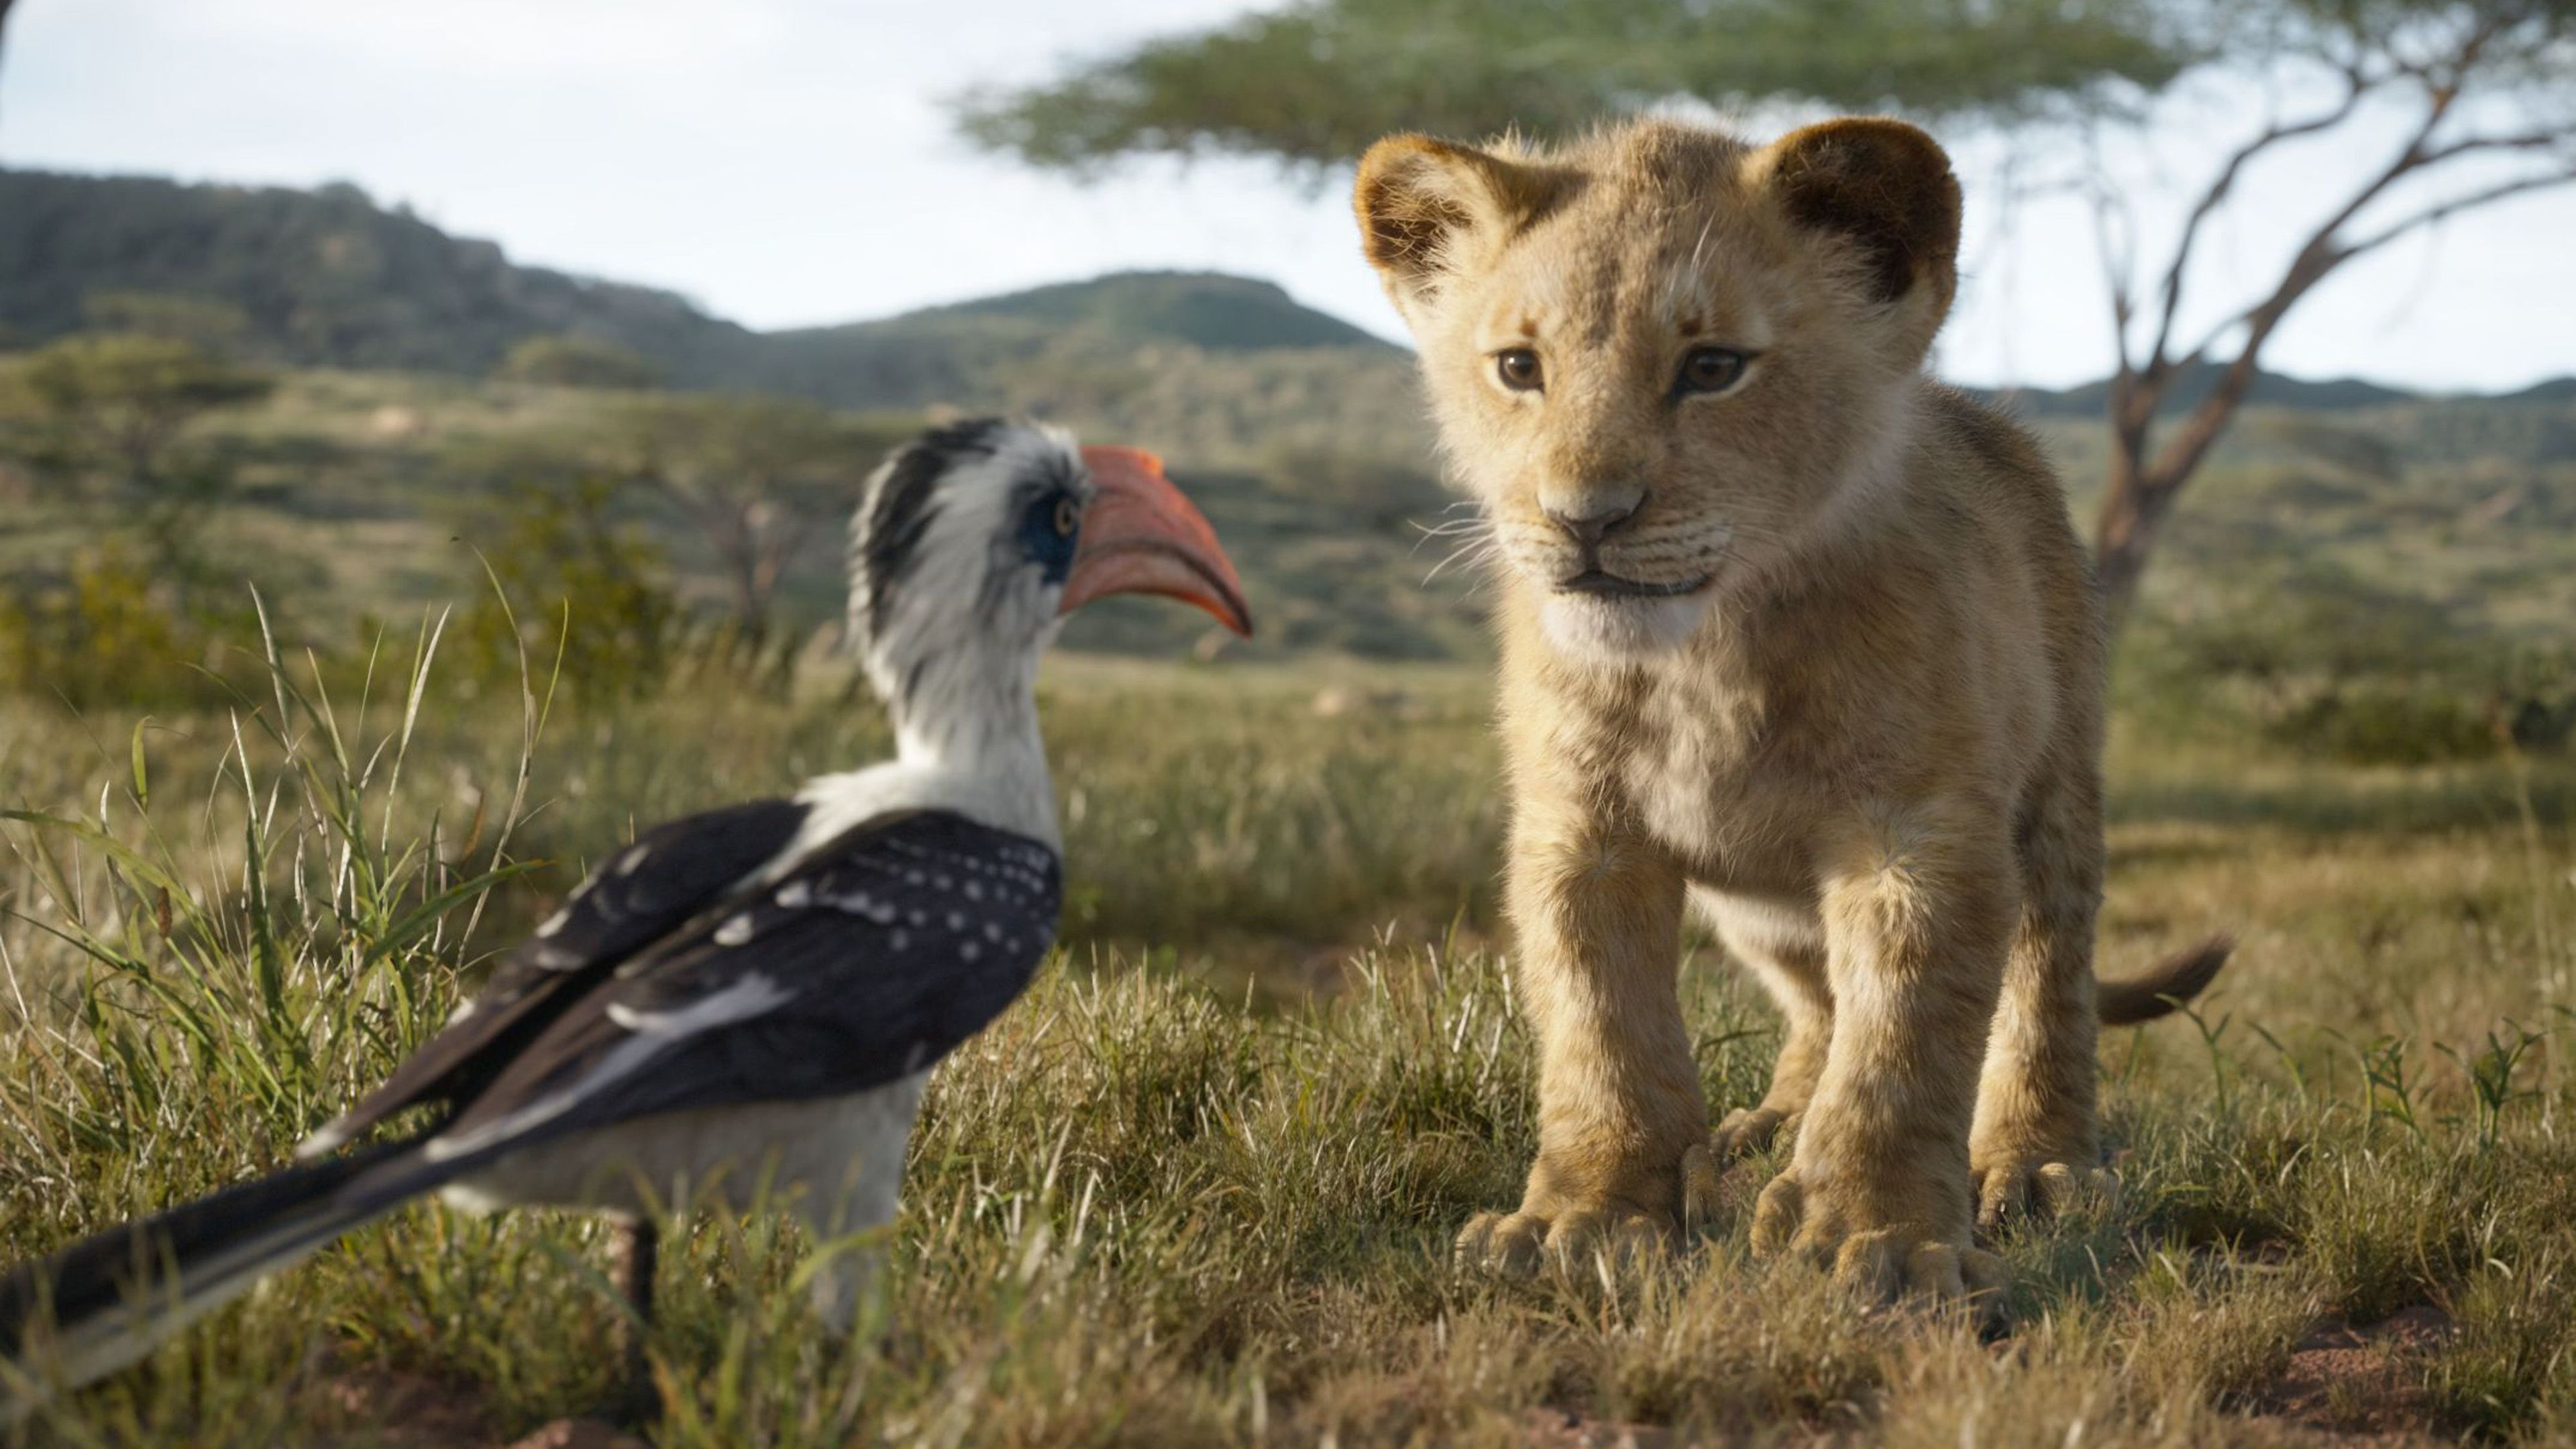 The Lion King Simba 4k The Lion King Wallpapers Simba Wallpapers Movies Wallpapers Lion Wallpapers Hd Wallp Lion King 2019 Lion King Remake Lion King Movie